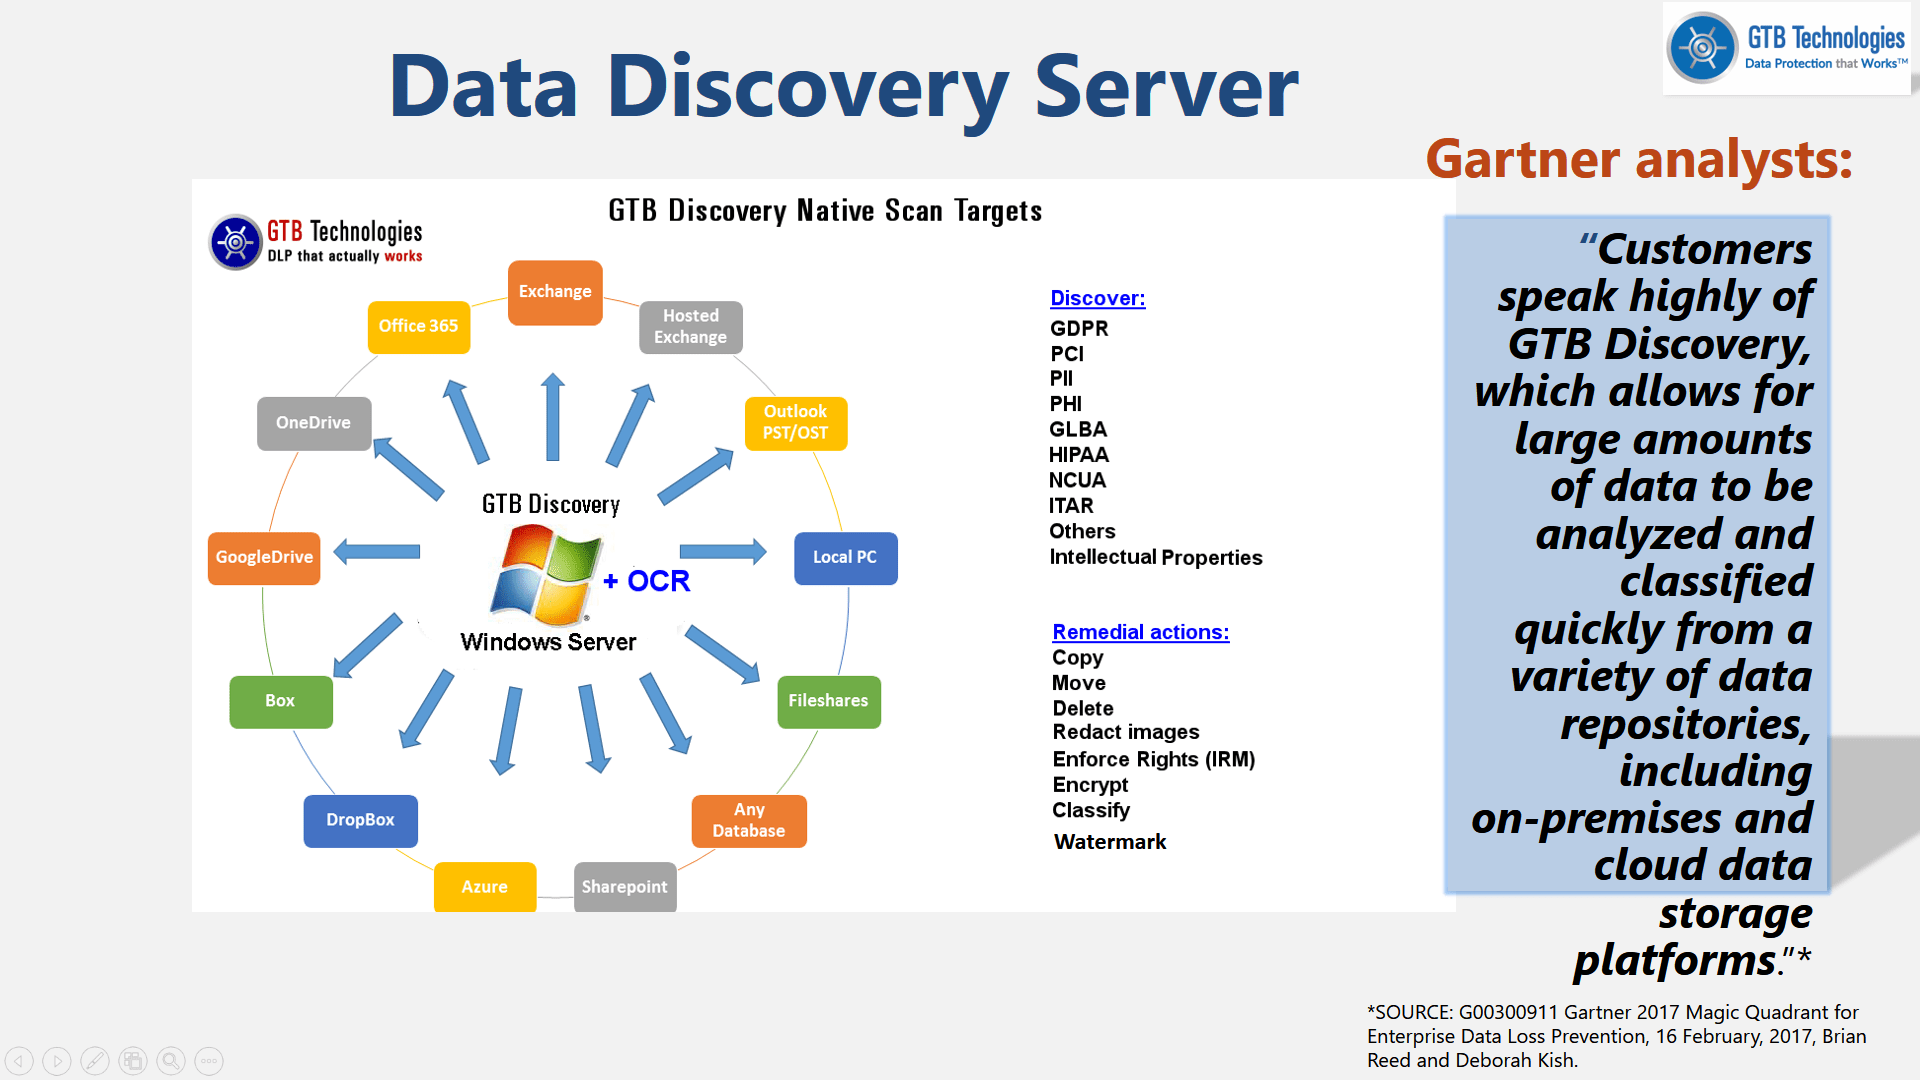 Data Discovery Dynamic Classification Security Policy Statement